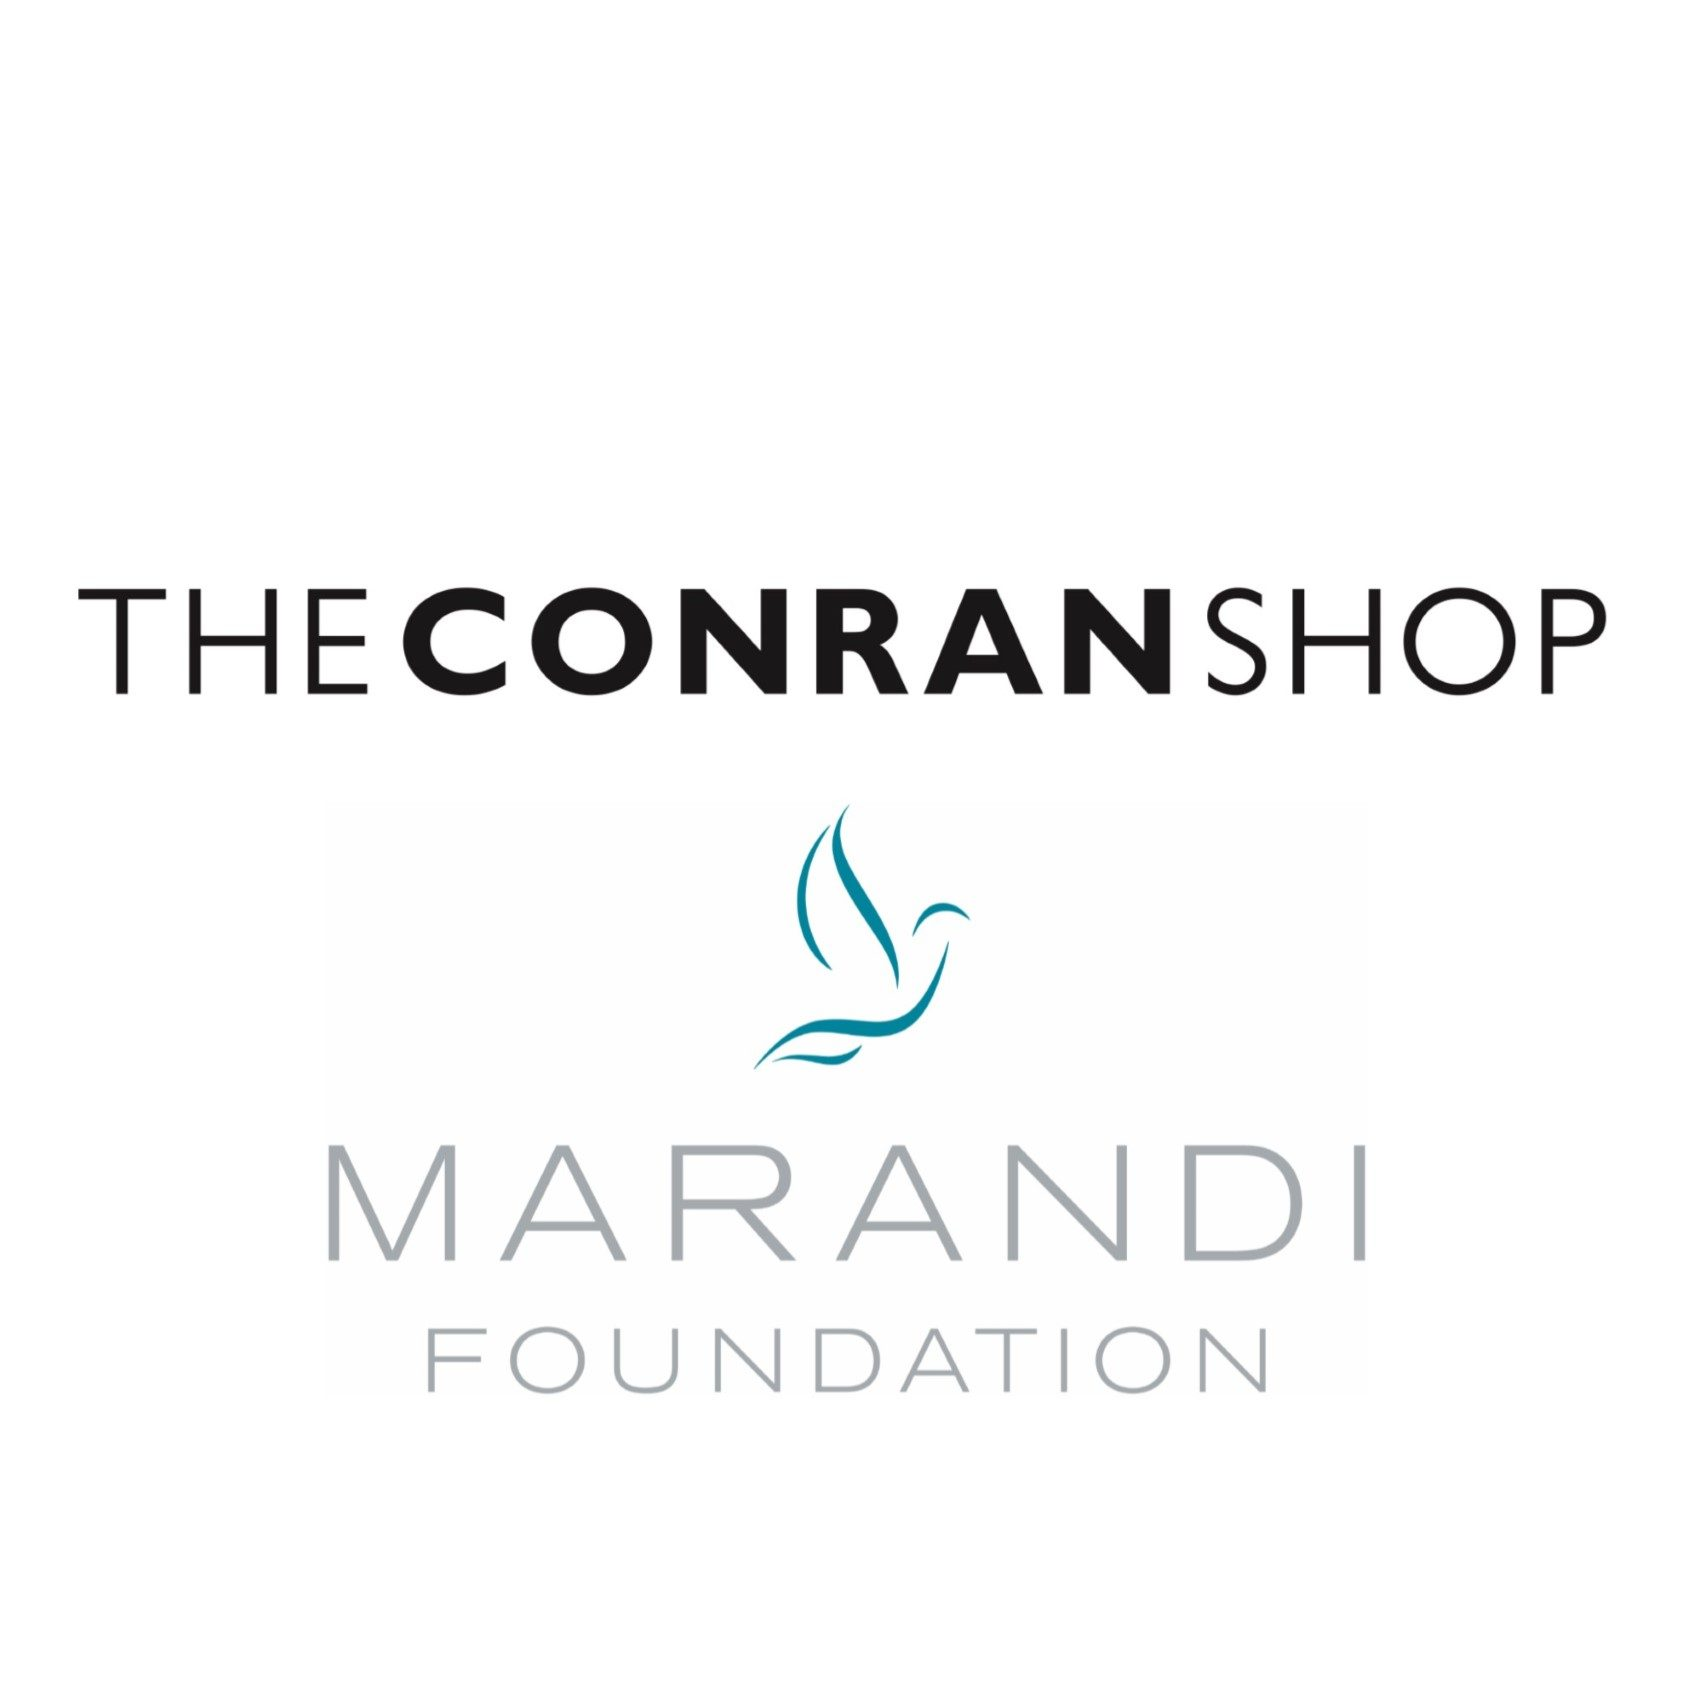 The Conran Shop & The Marandi Foundation